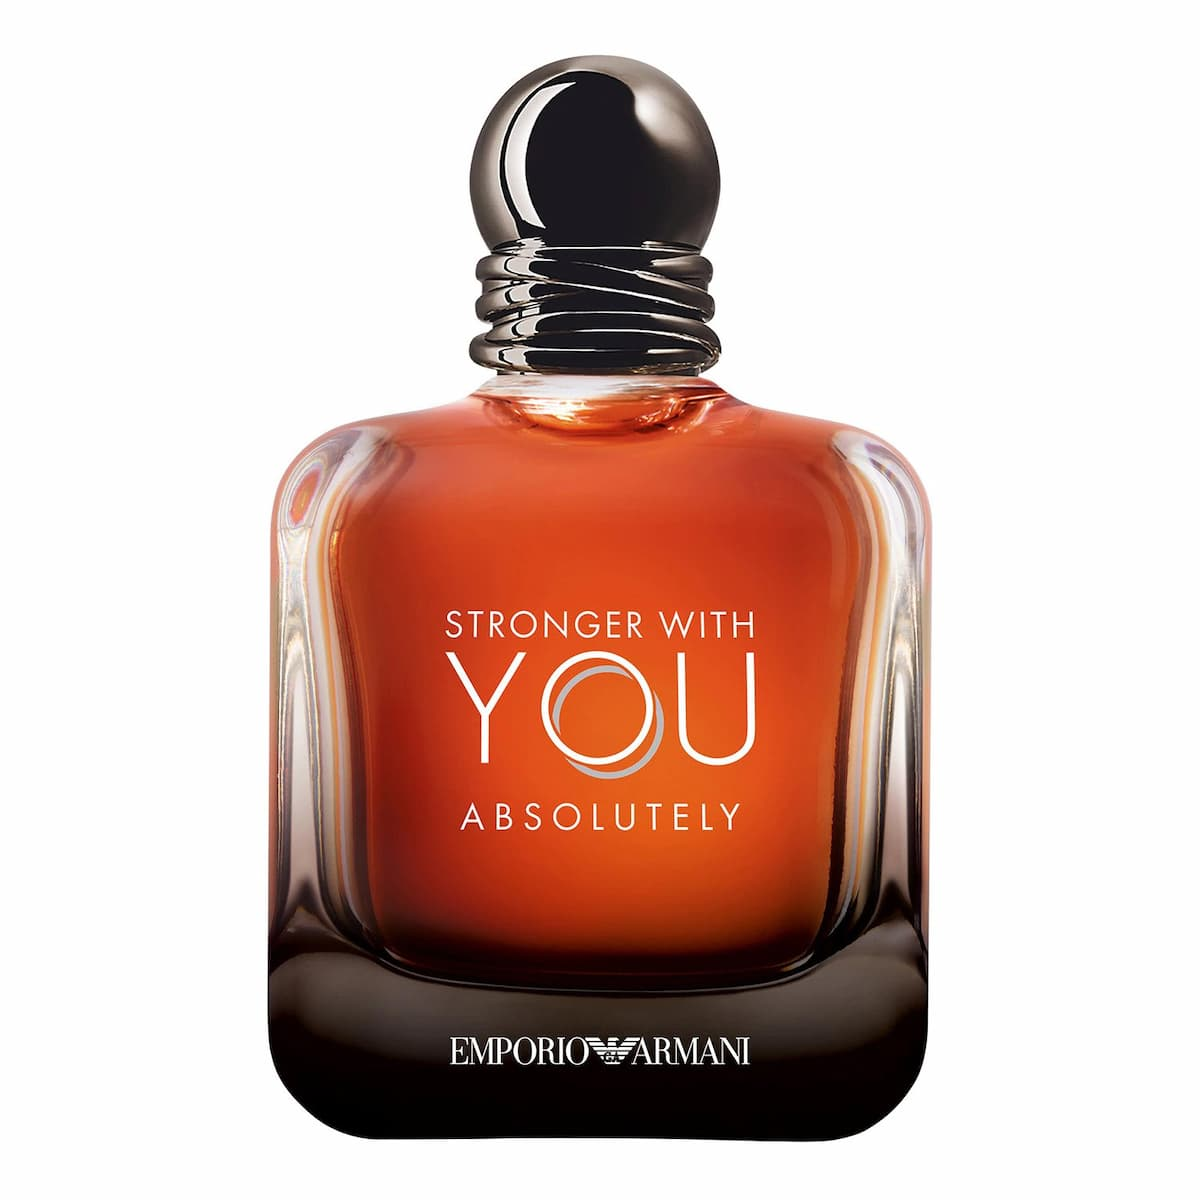 Armani - Emporio Armani Stronger with You Absolutely - Eau de Parfum